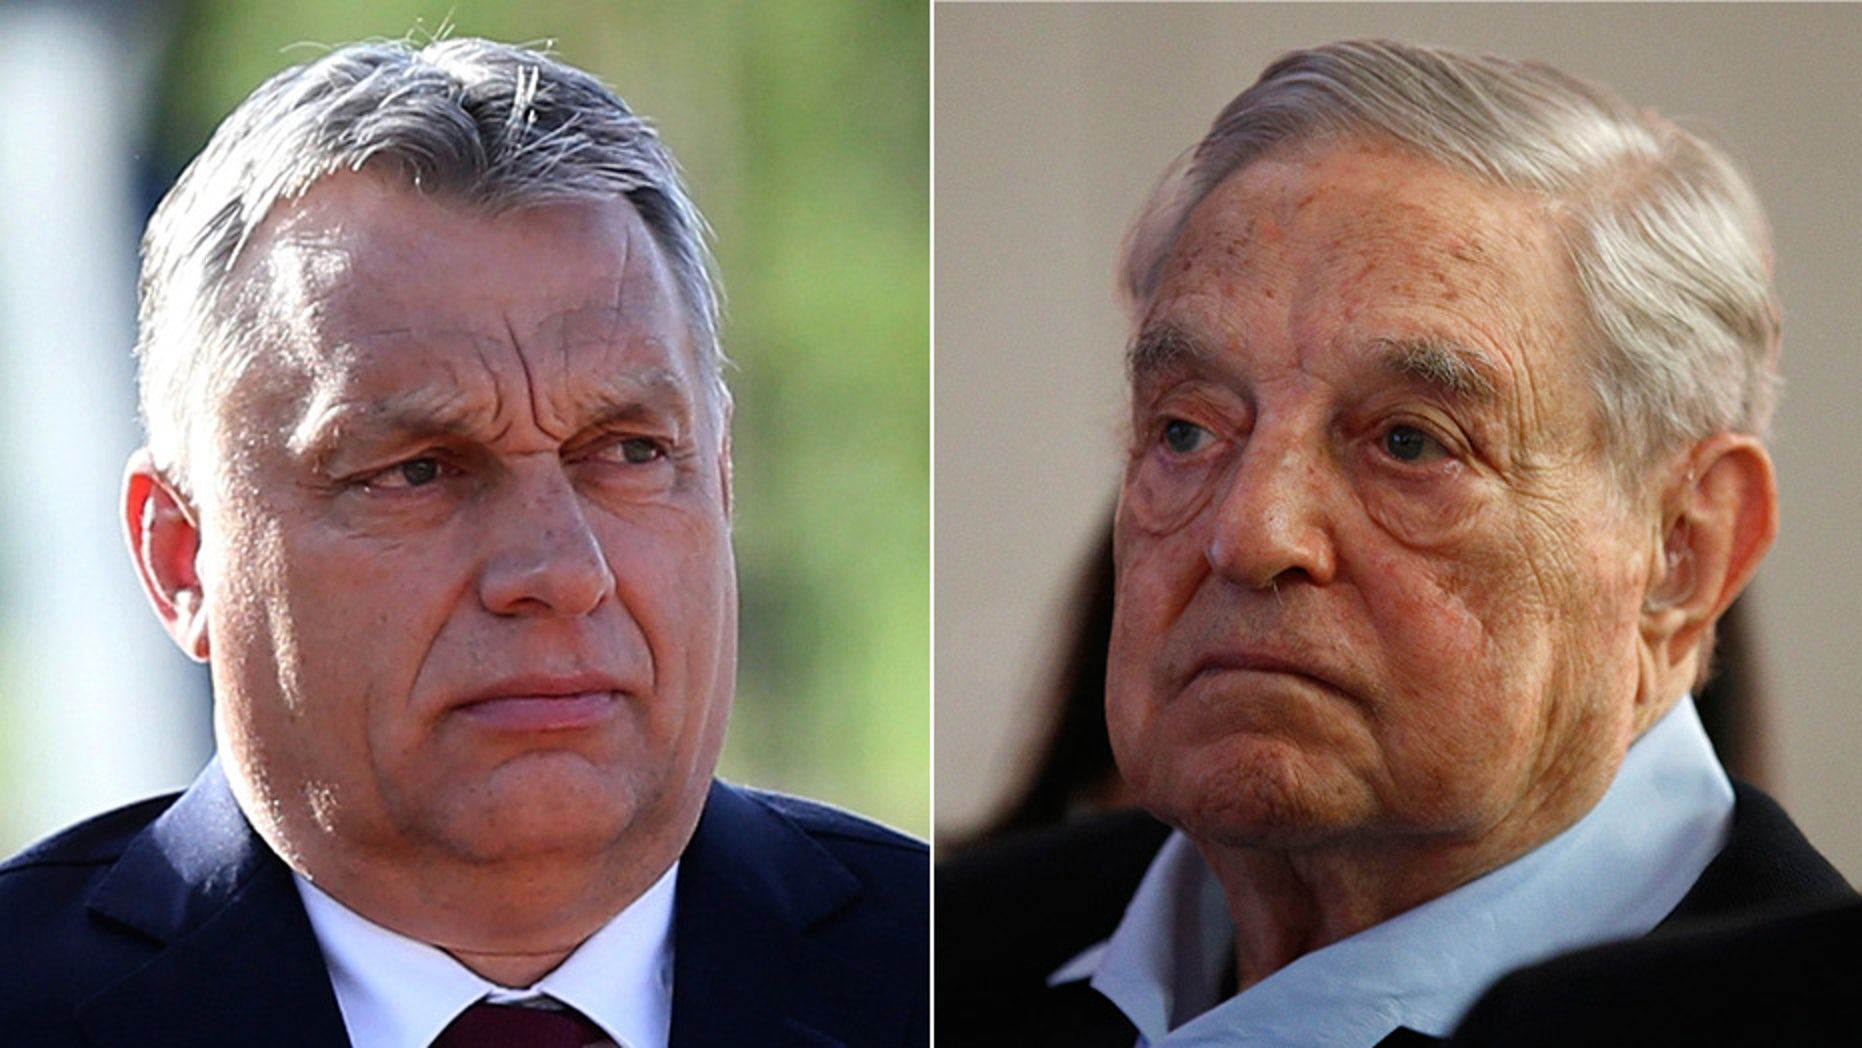 Hungarian Prime Minister Viktor Orban, left, and billionaire donor George Soros have been locked in a battle over immigration policy in the eastern European country.